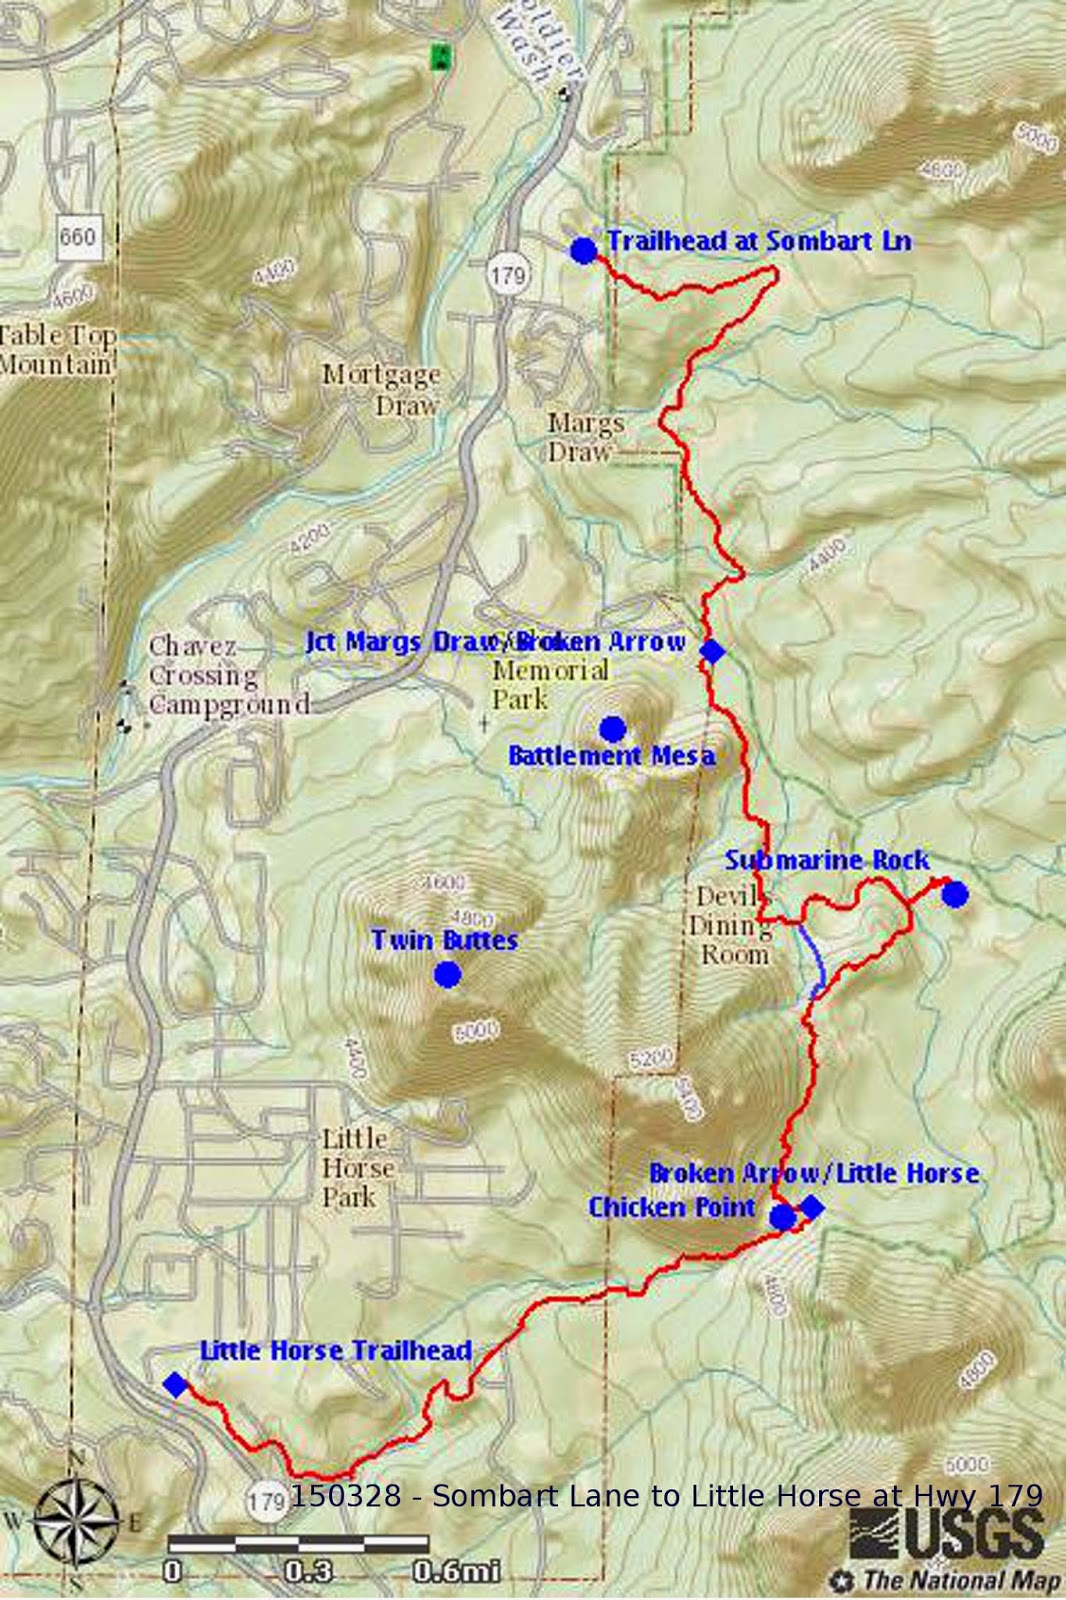 our track is shown in red on the included map below